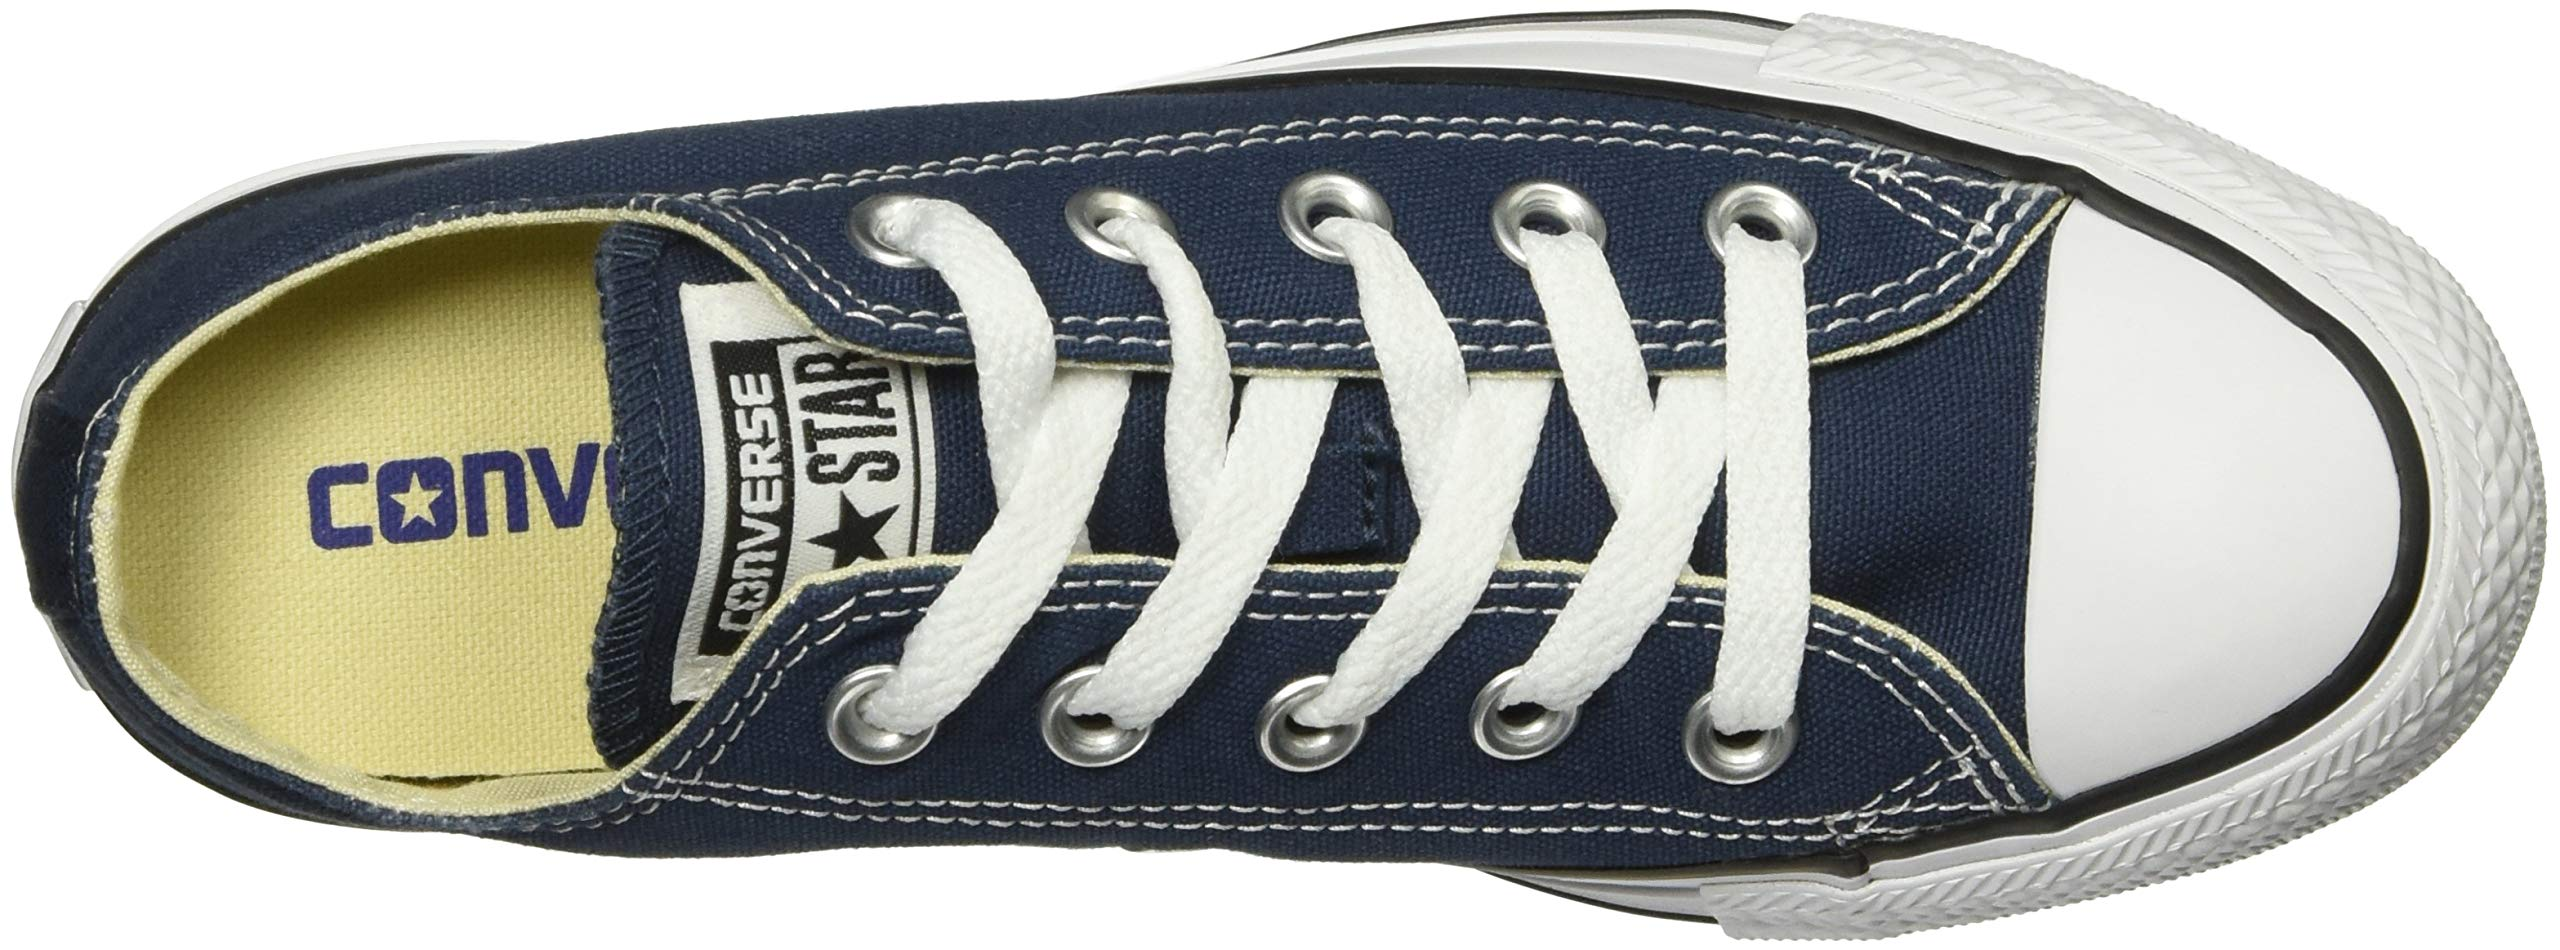 Converse Unisex Chuck Taylor All Star Low Top Navy Sneakers - 12MN-14WO B(M) US by Converse (Image #8)